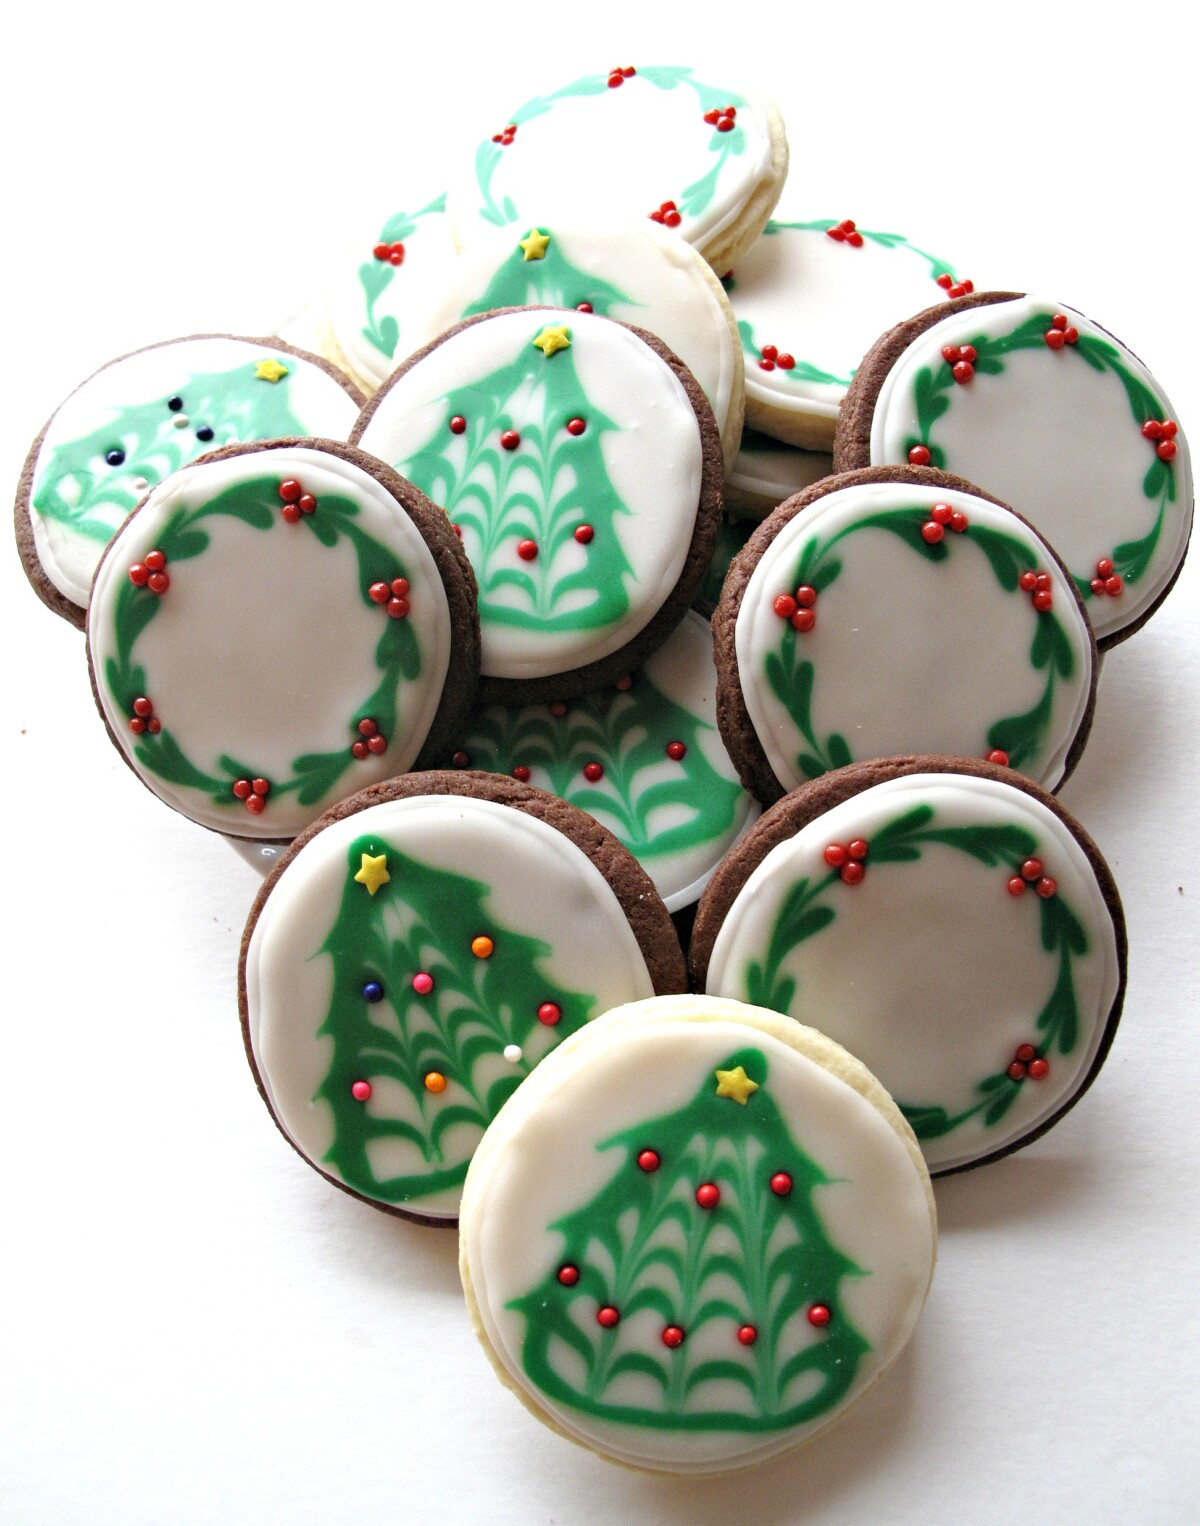 Iced Christmas Sugar Cookies with Christmas tree and wreath designs.